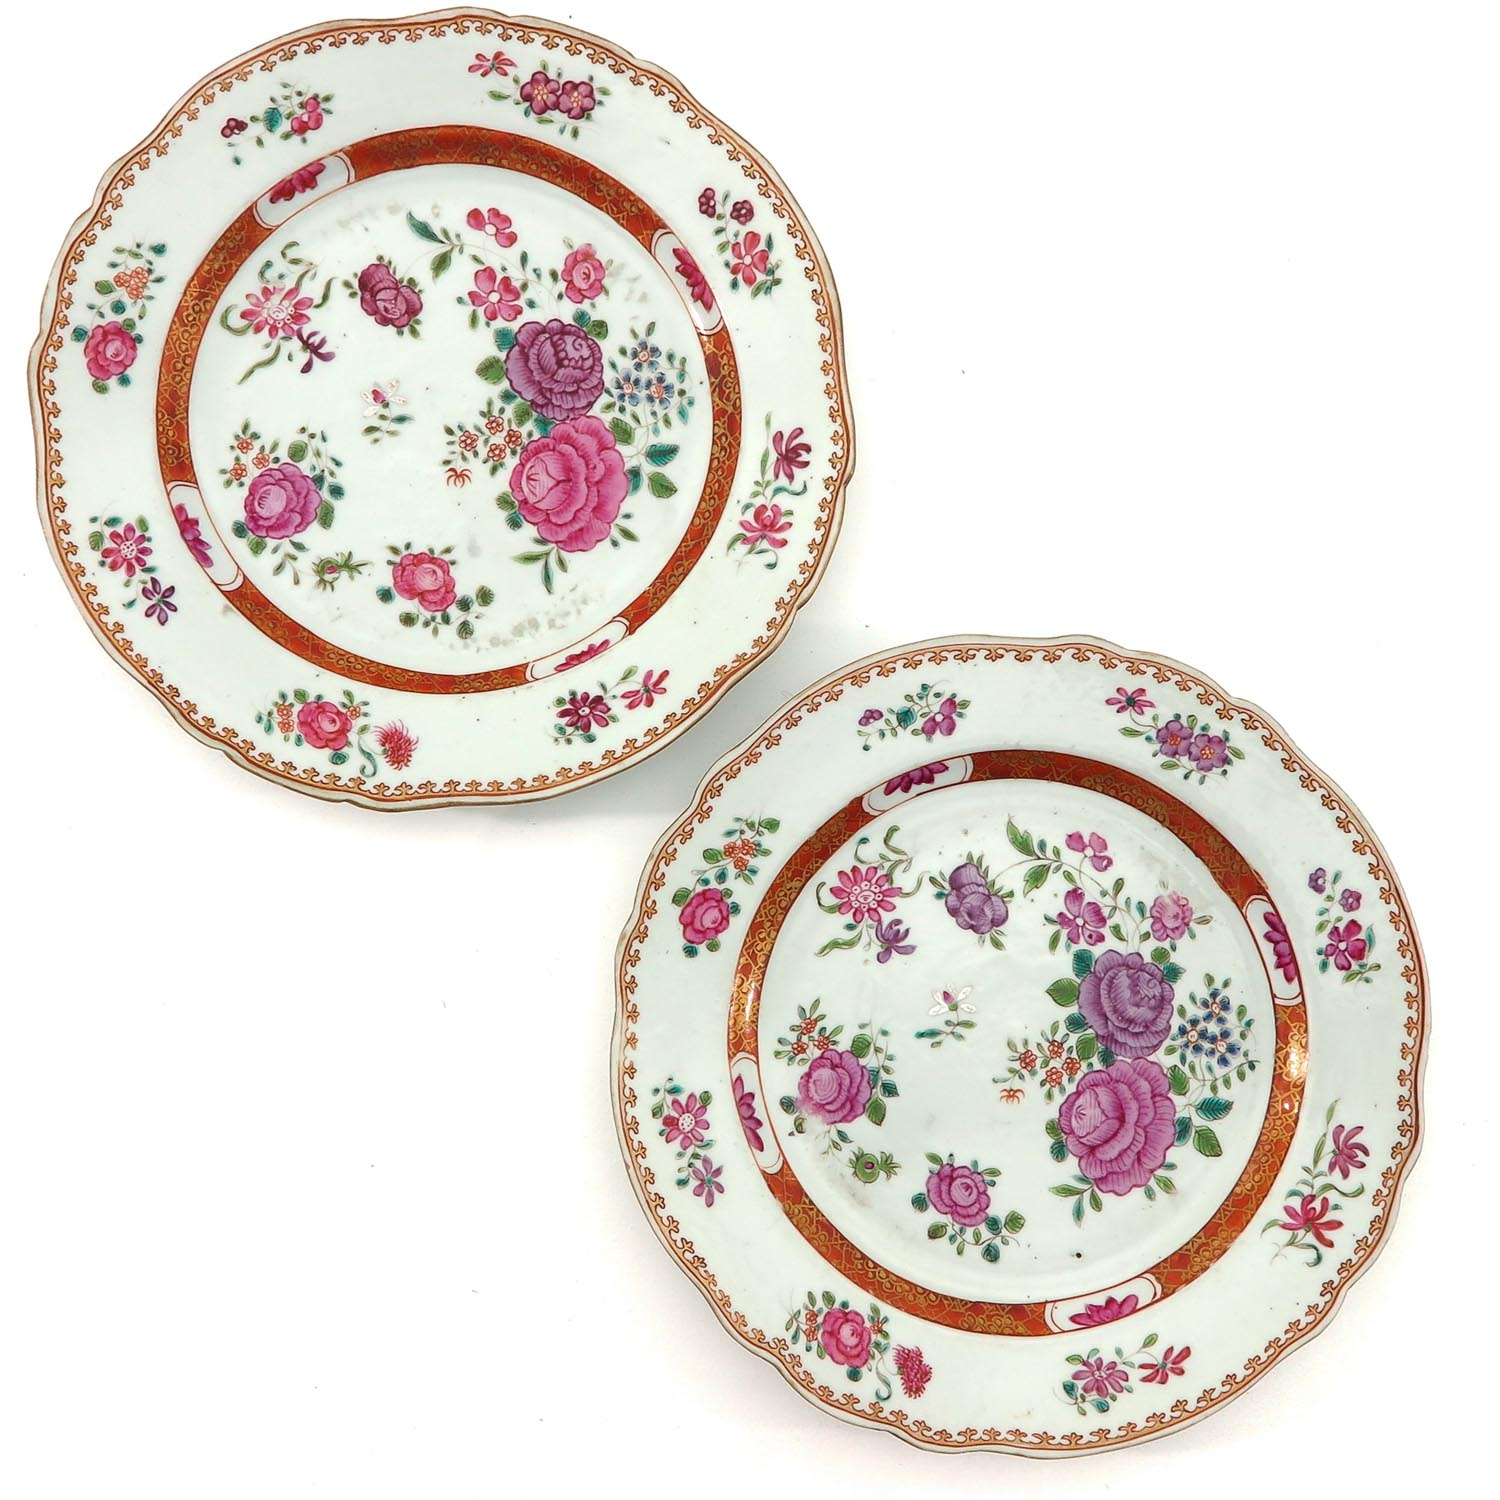 A Series of 5 Famille Rose Plates - Image 5 of 9